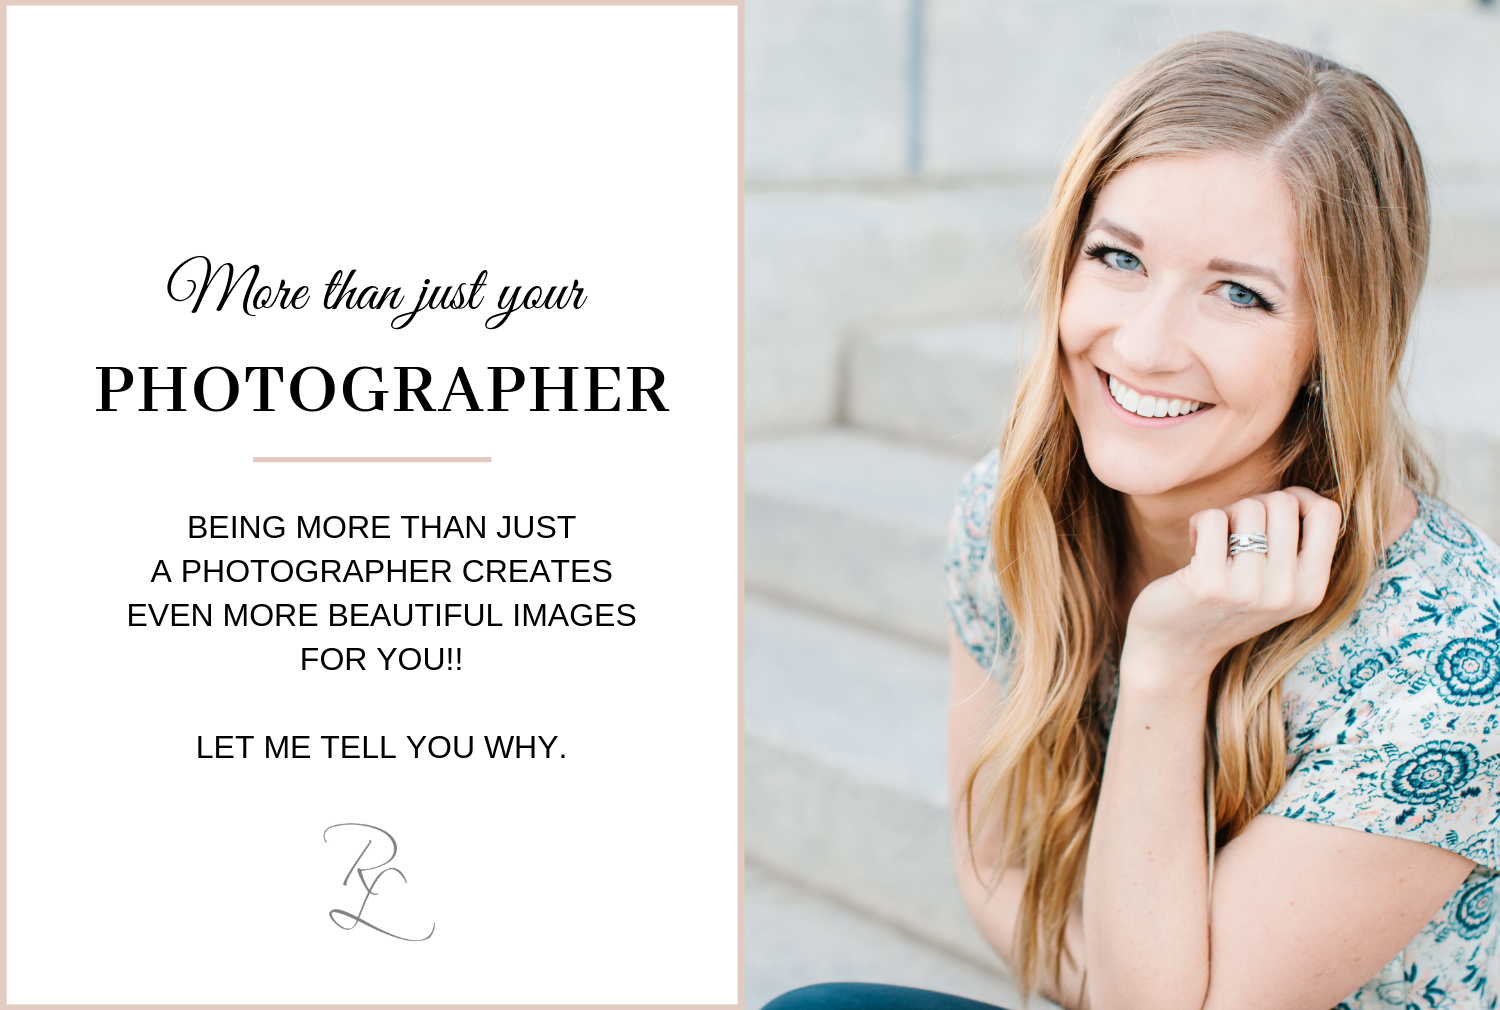 Being more than just a photographer -- being your friend -- creates even more beautiful images! Let me tell you why relationships matter so much!